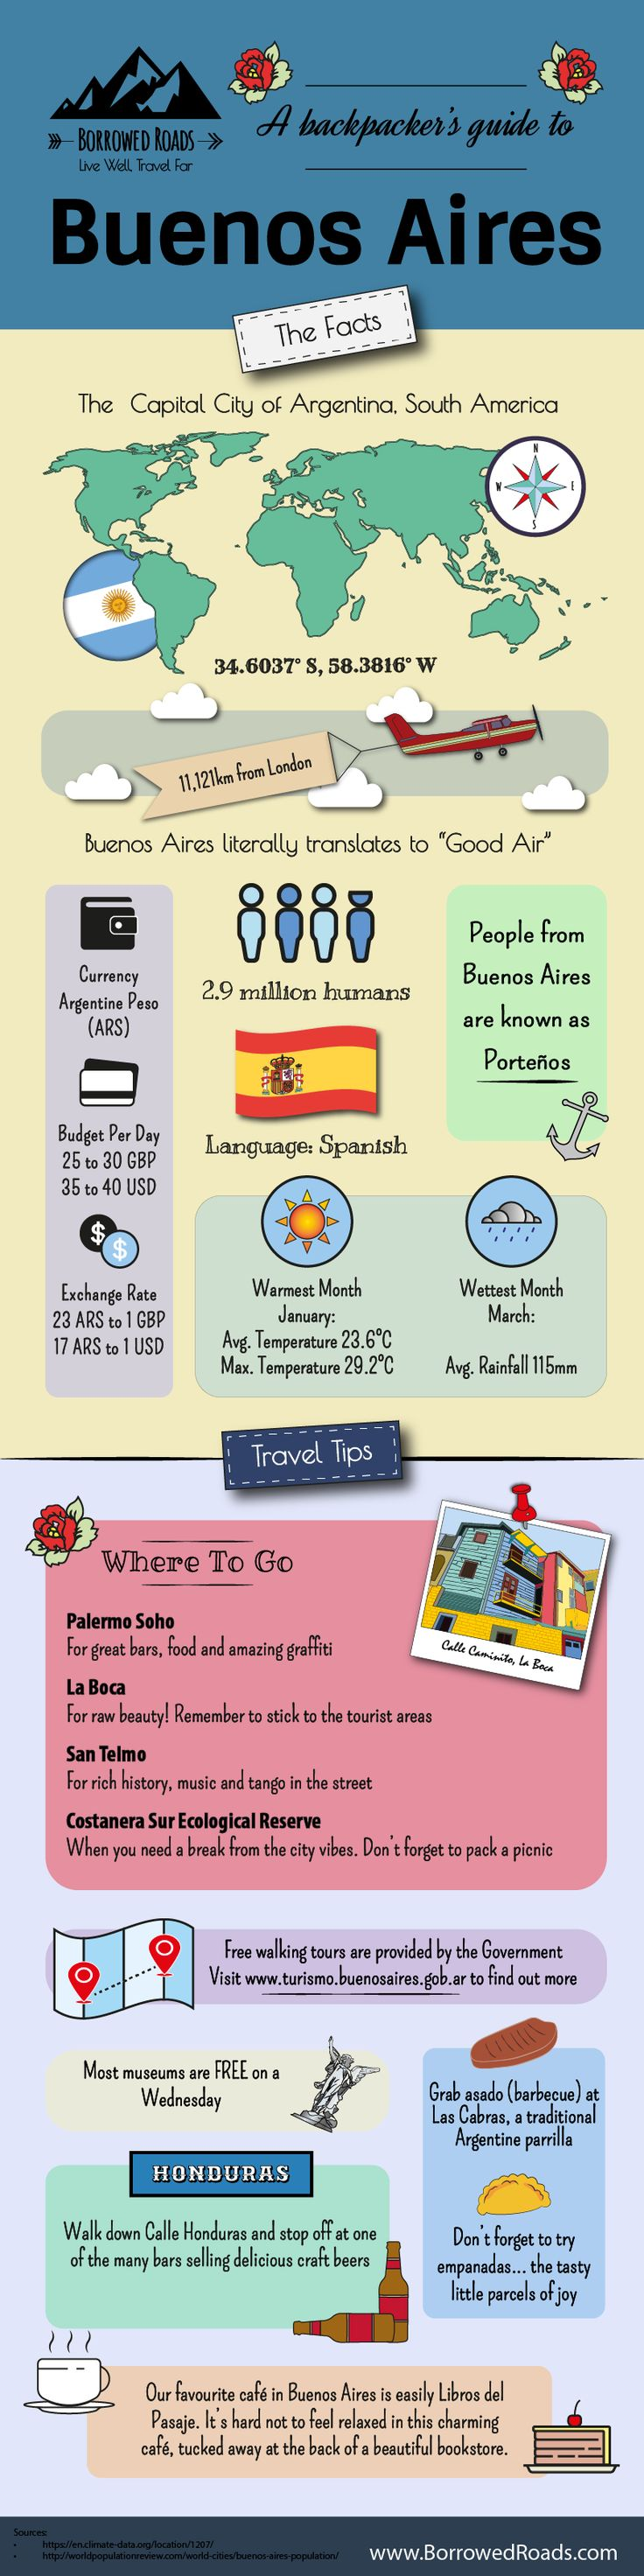 Check out our Backpacker's Guide to Buenos Aires #travel #guide #buenosaires #infographic